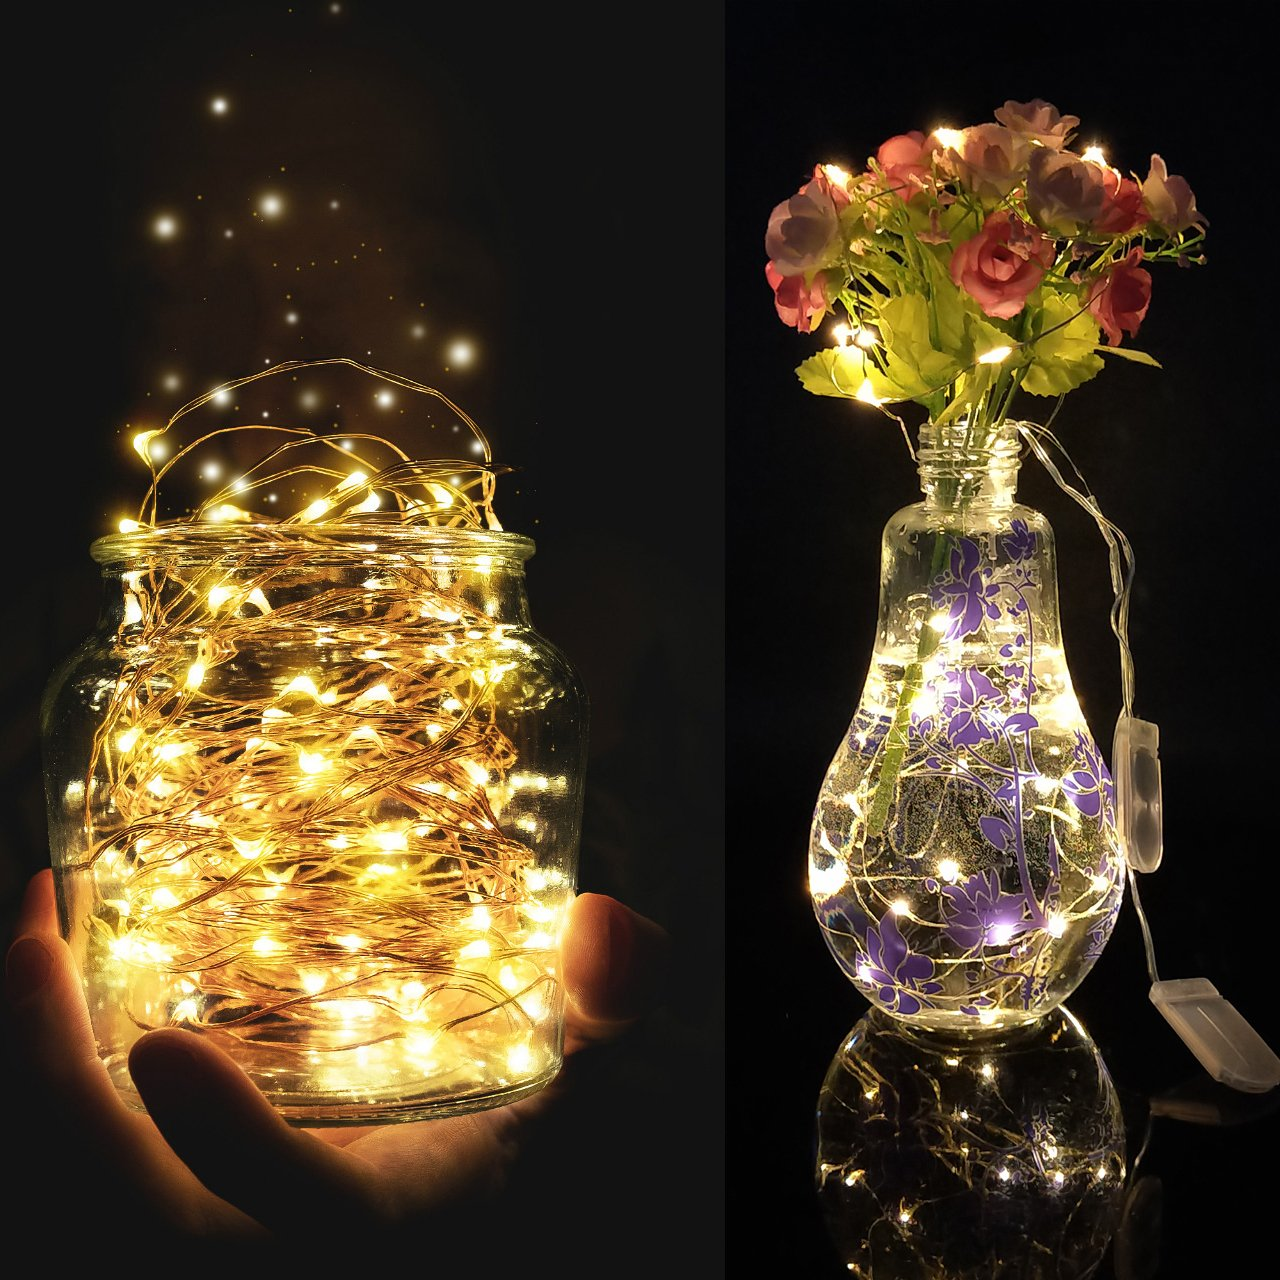 Wedding LED String Lights Outdoor Indoor 6.5ft 20LEDs Christmas String Lights Decoration Lighting Battery Operated Perfect for Party 6Packs-Warm White Holiday Decoration